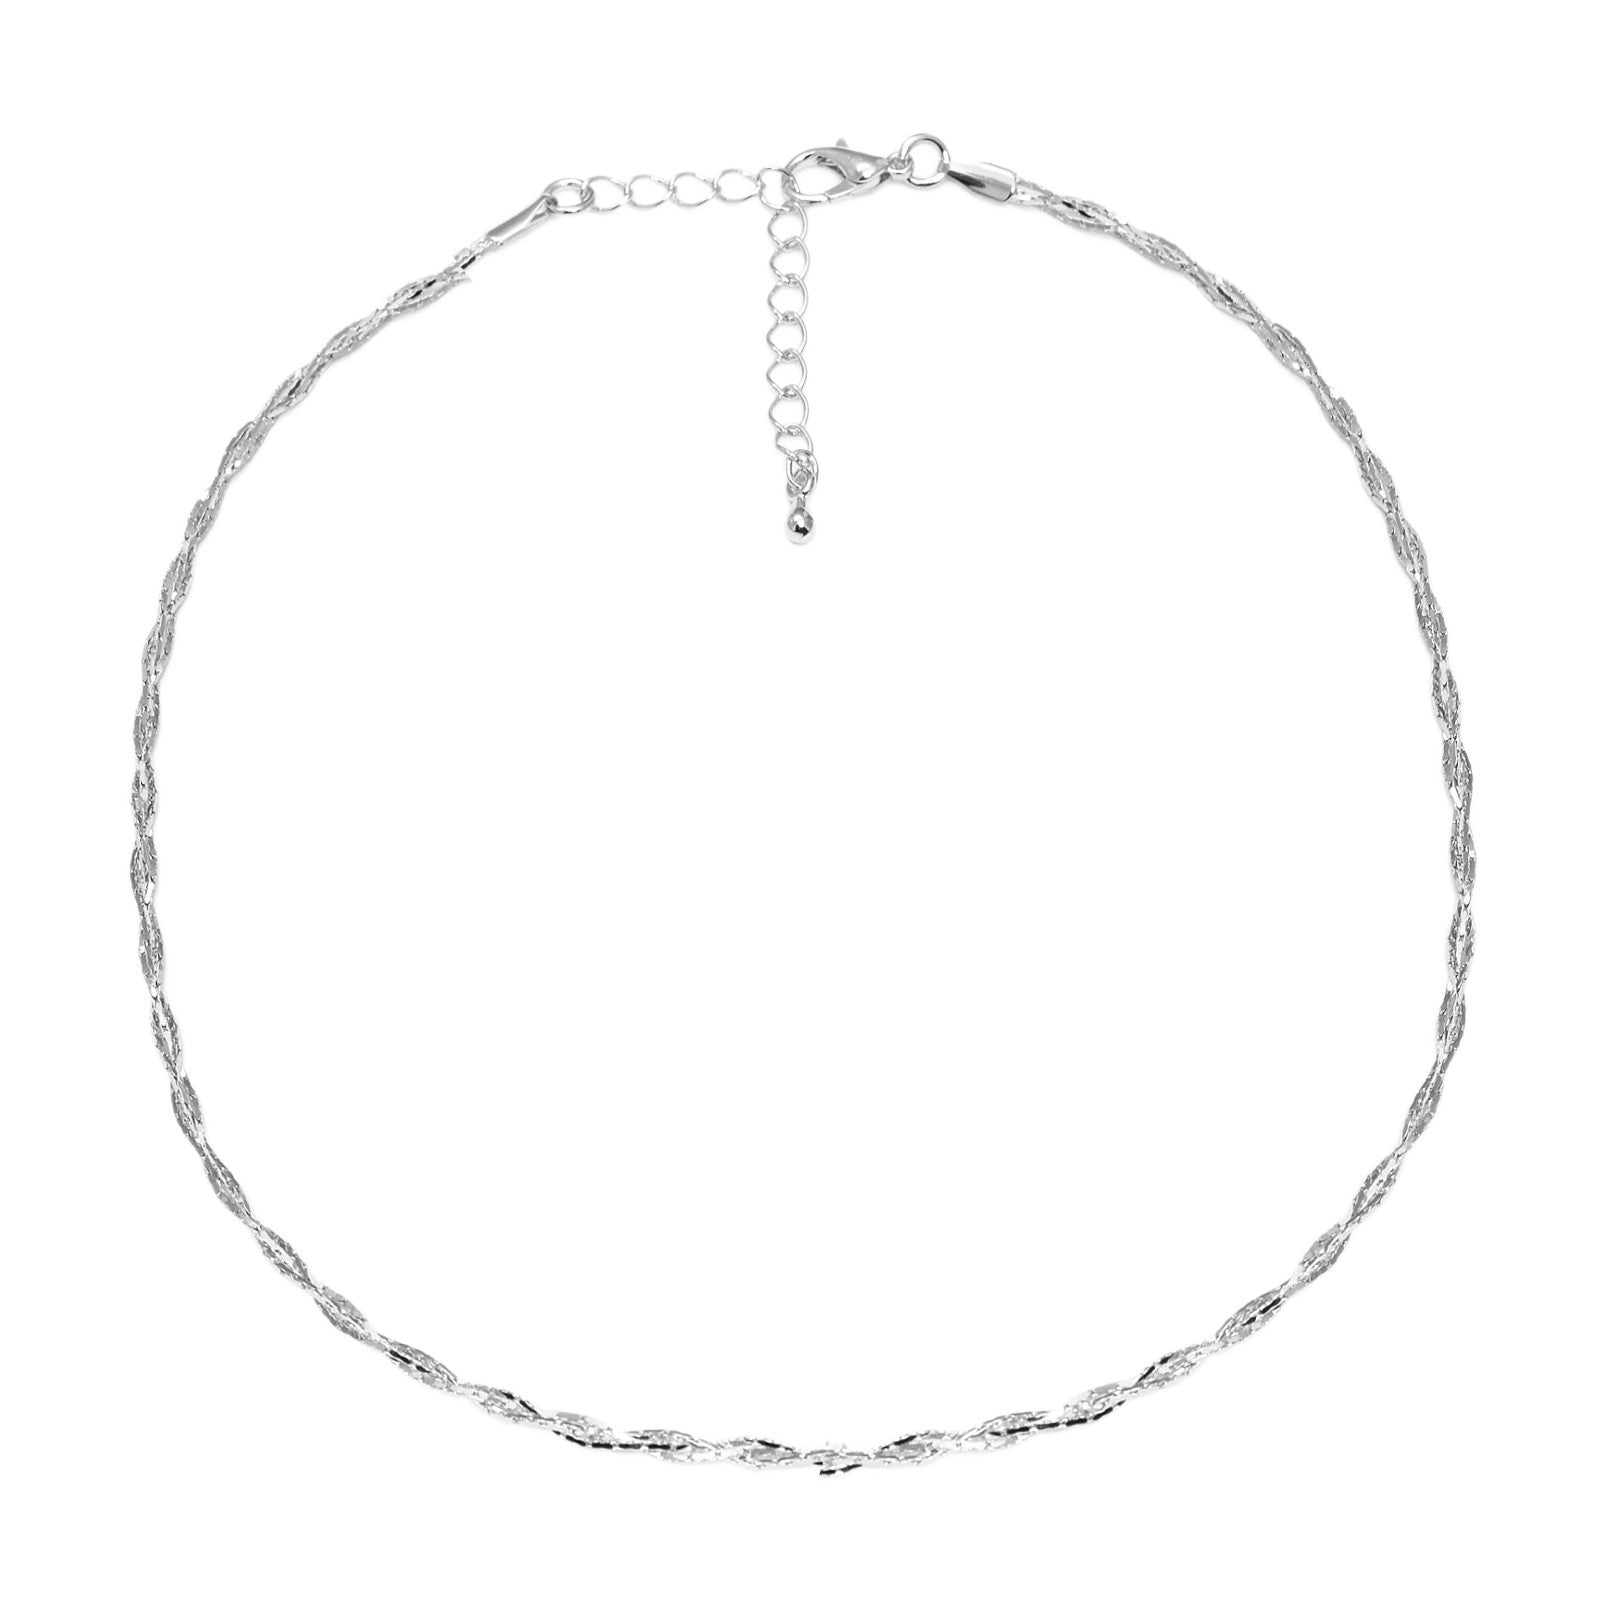 b488d9edcb001 Diamond Cut Skinny Weaved Choker Necklace